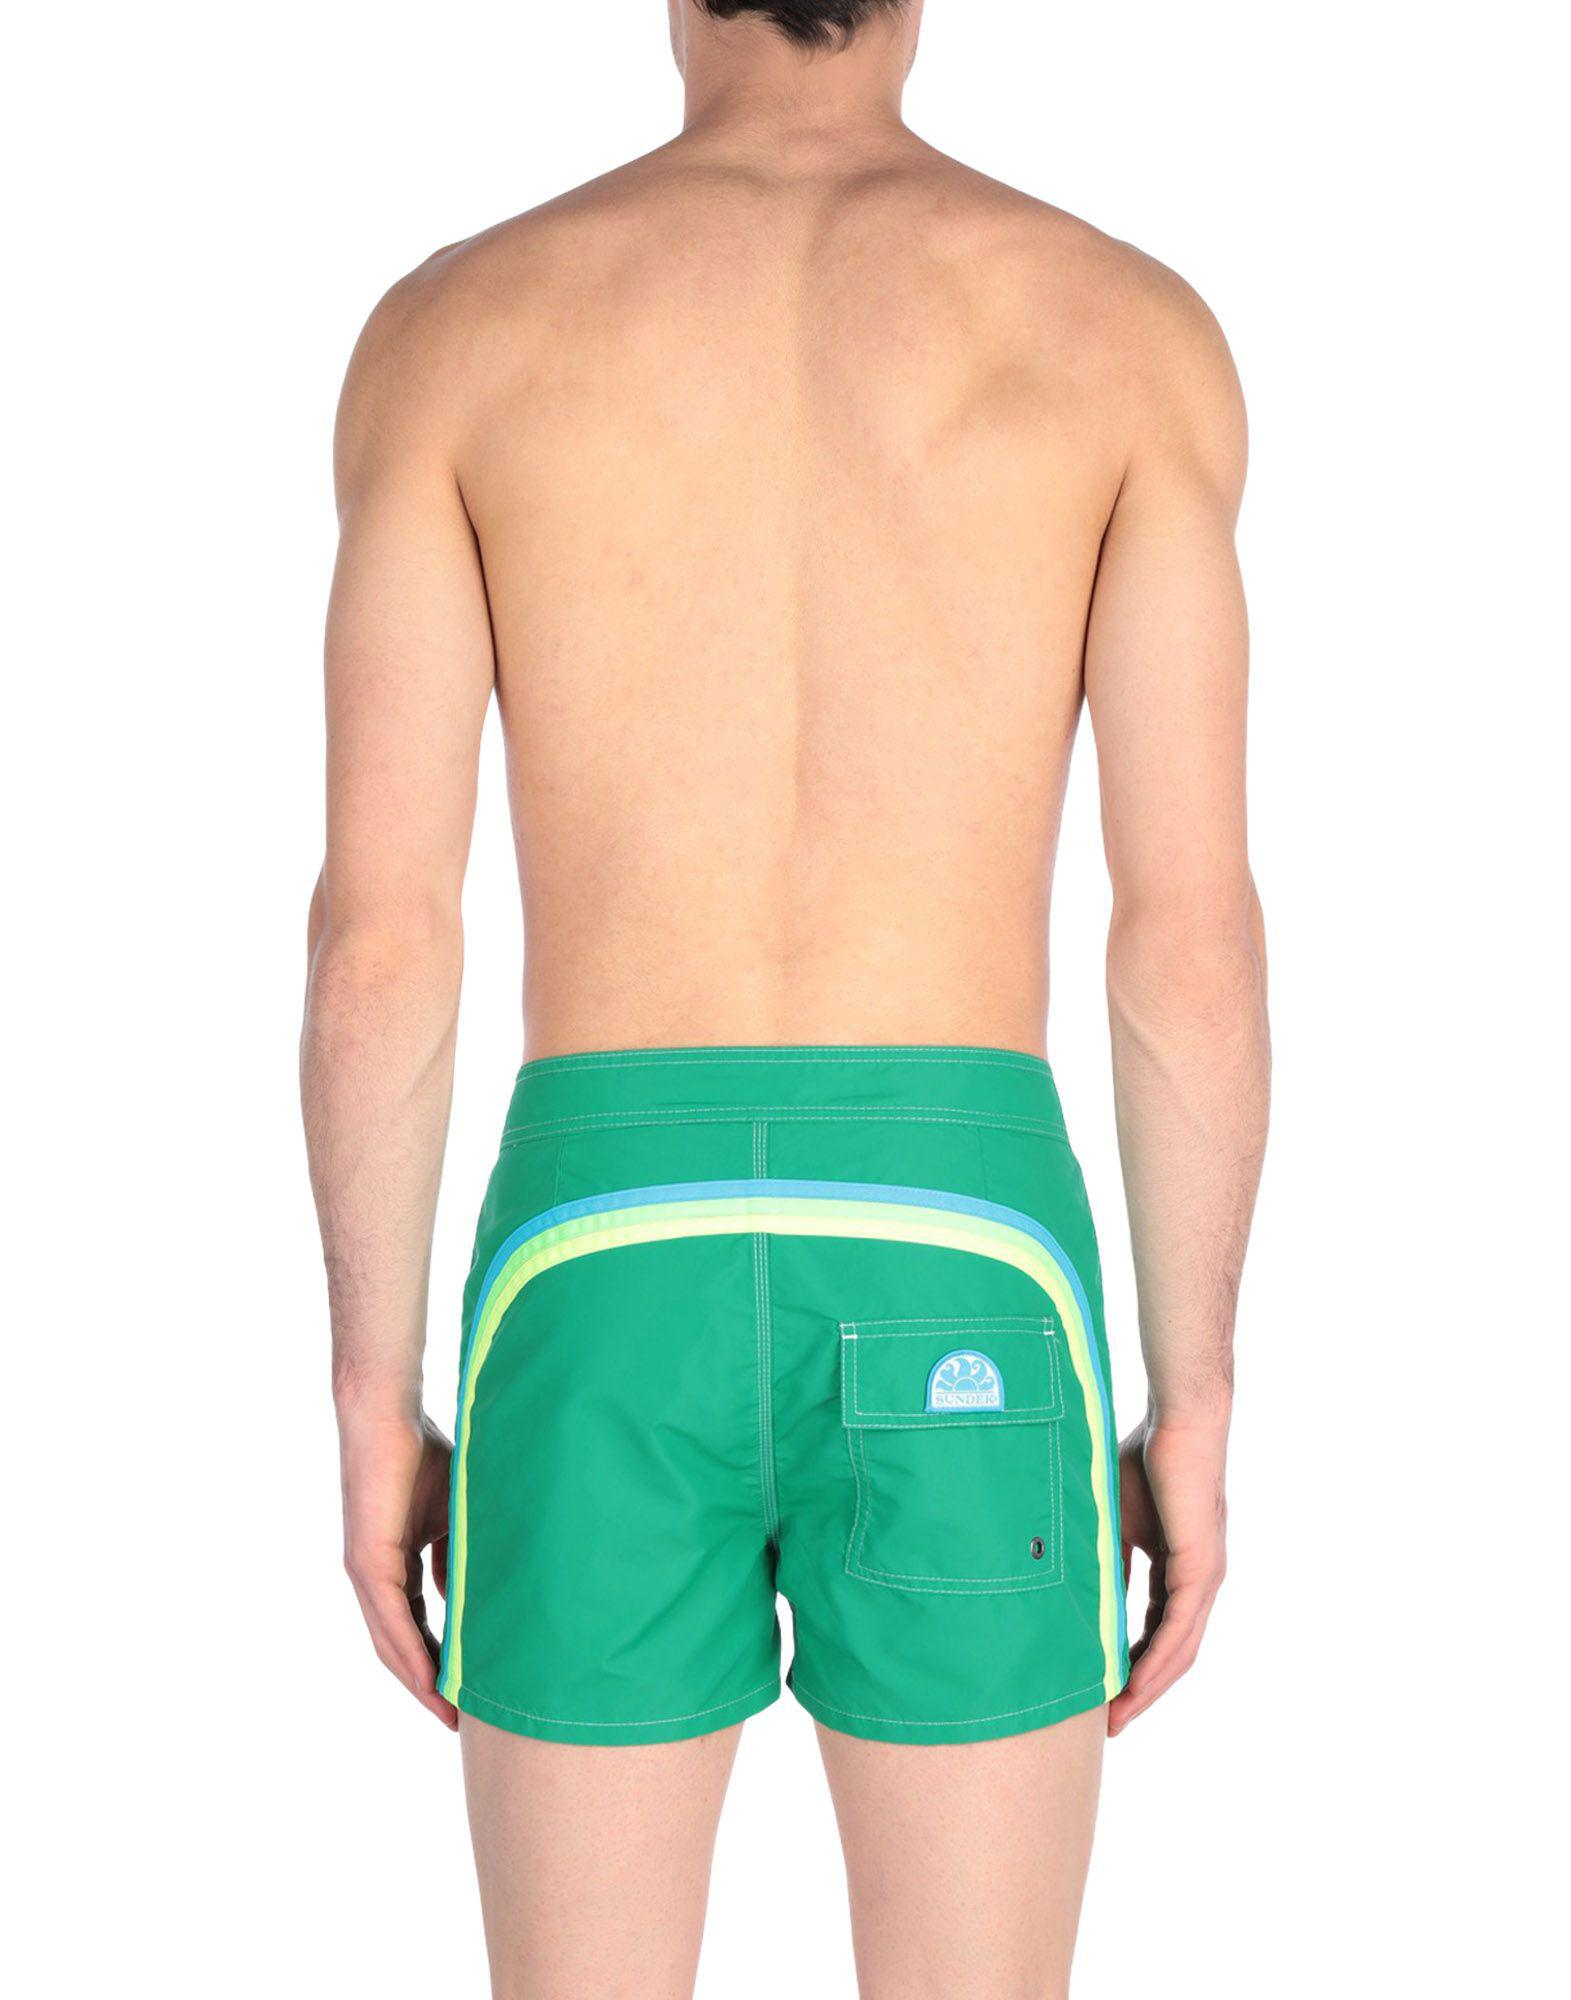 4dcd353370 Sundek Swimming Trunks in Green for Men - Lyst